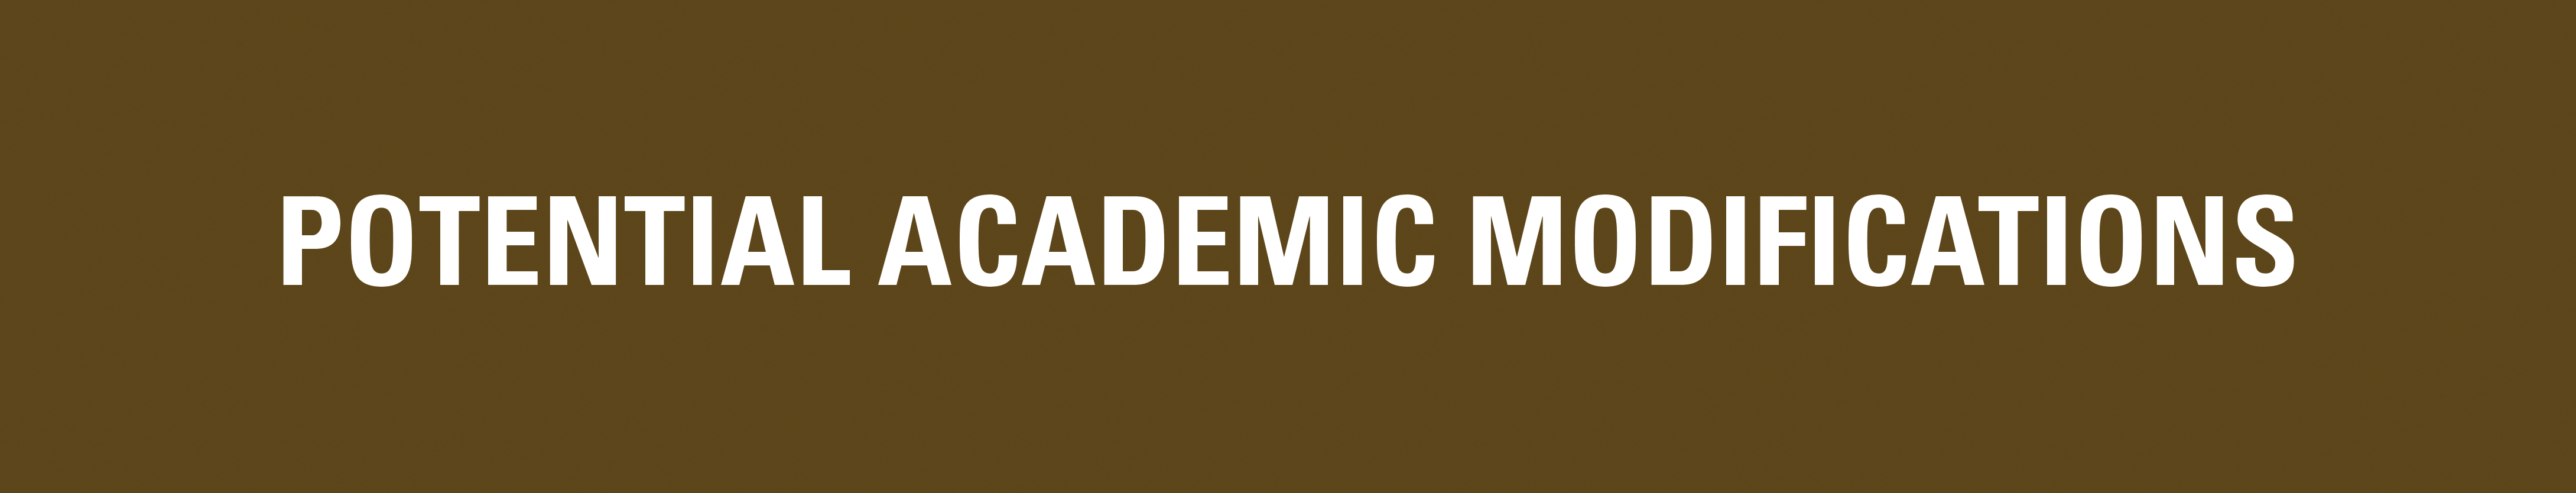 Potential Academic Modifications